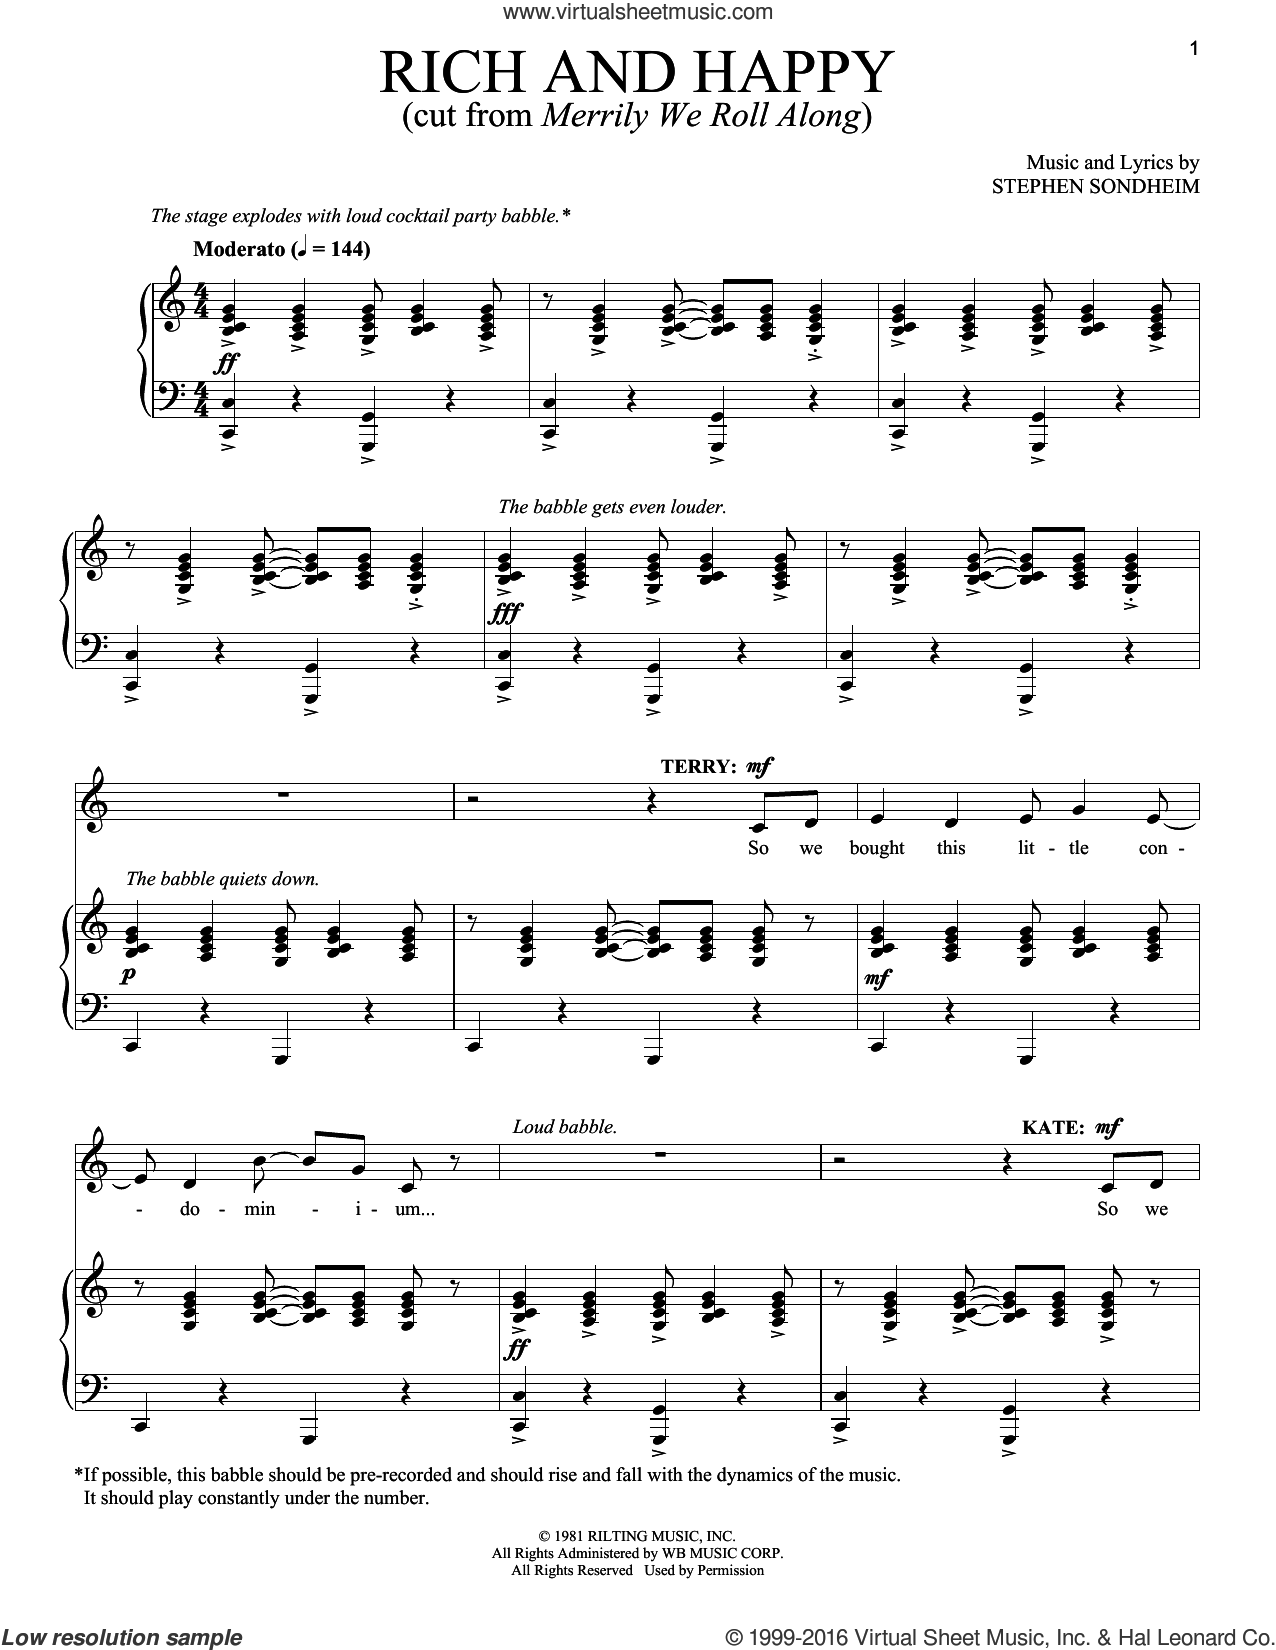 Rich And Happy sheet music for voice and piano by Stephen Sondheim. Score Image Preview.